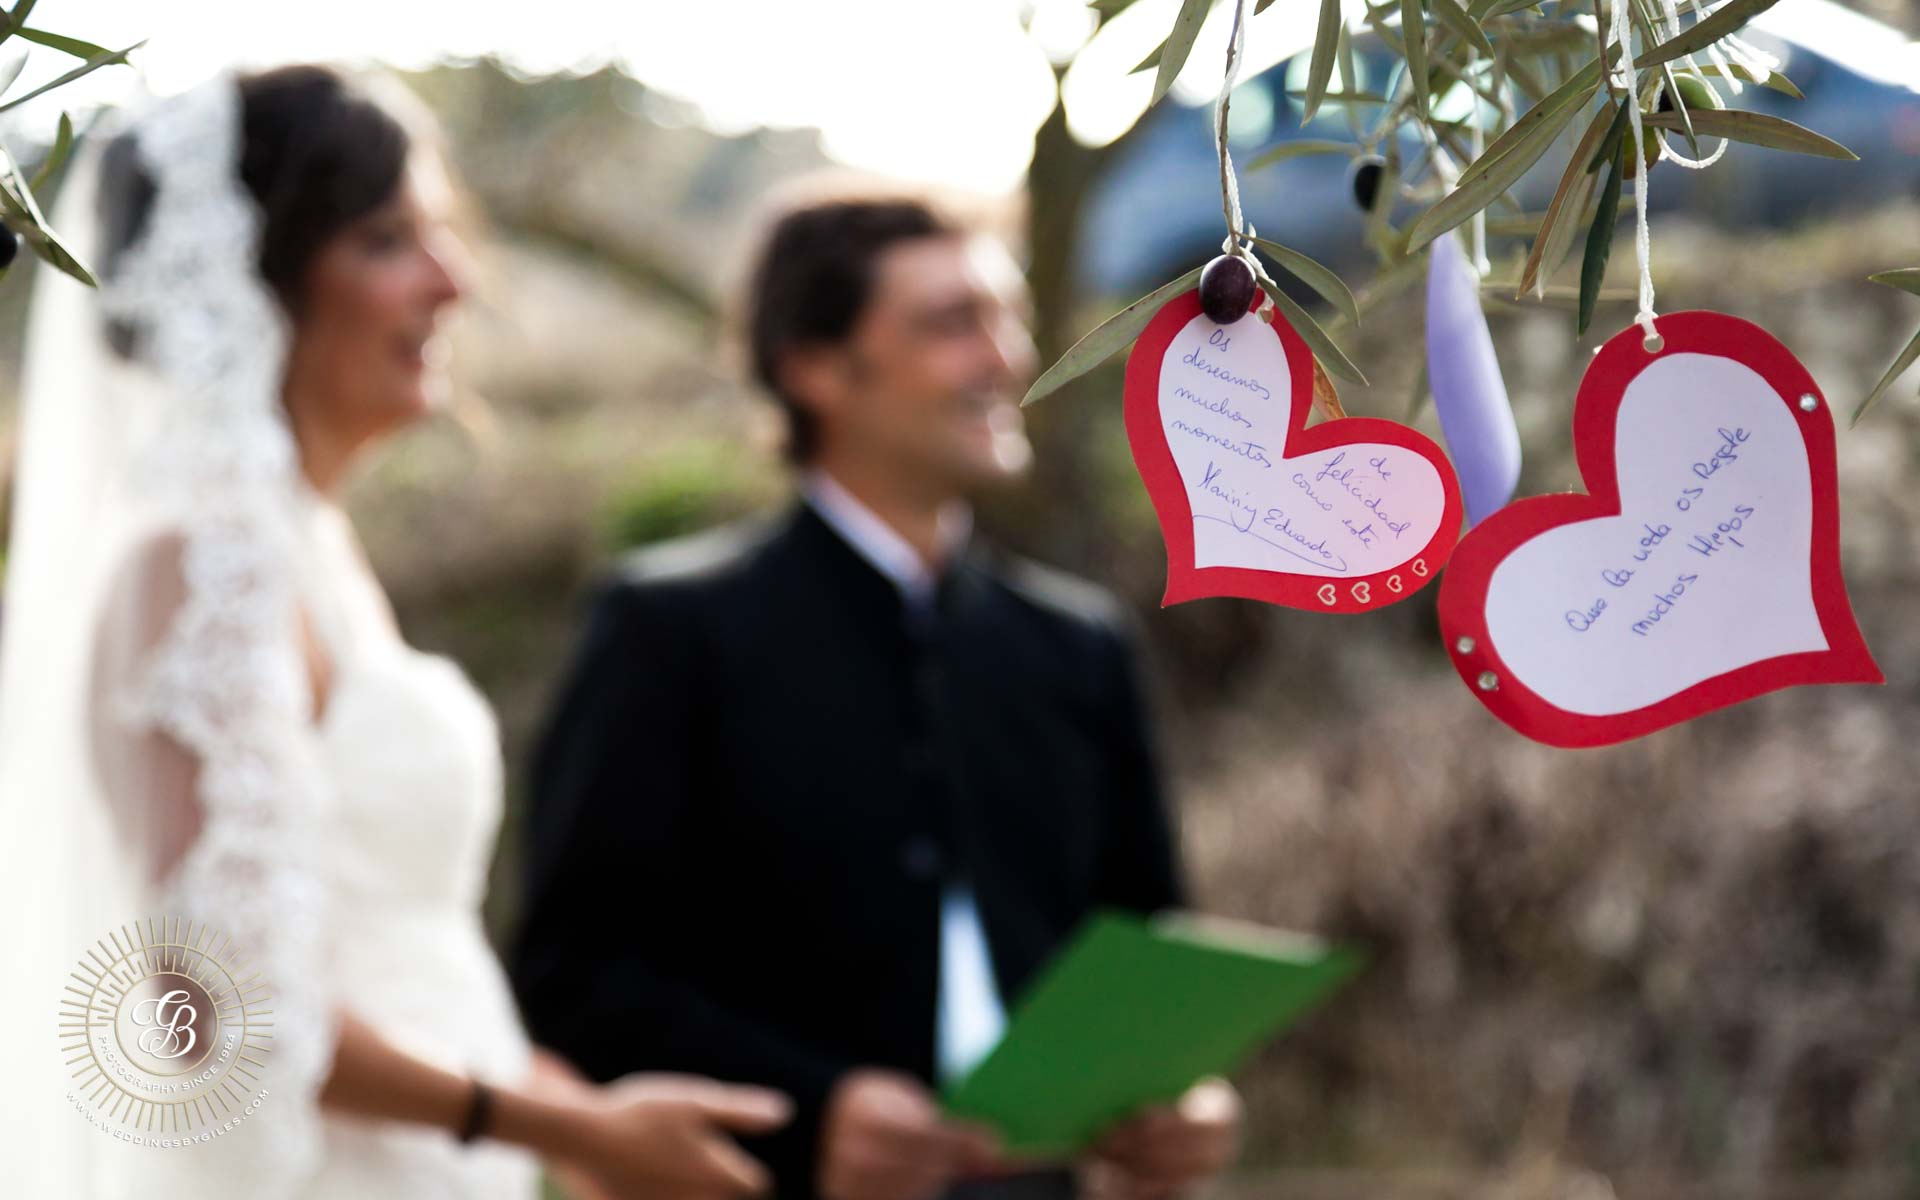 wedding messages tied in tree